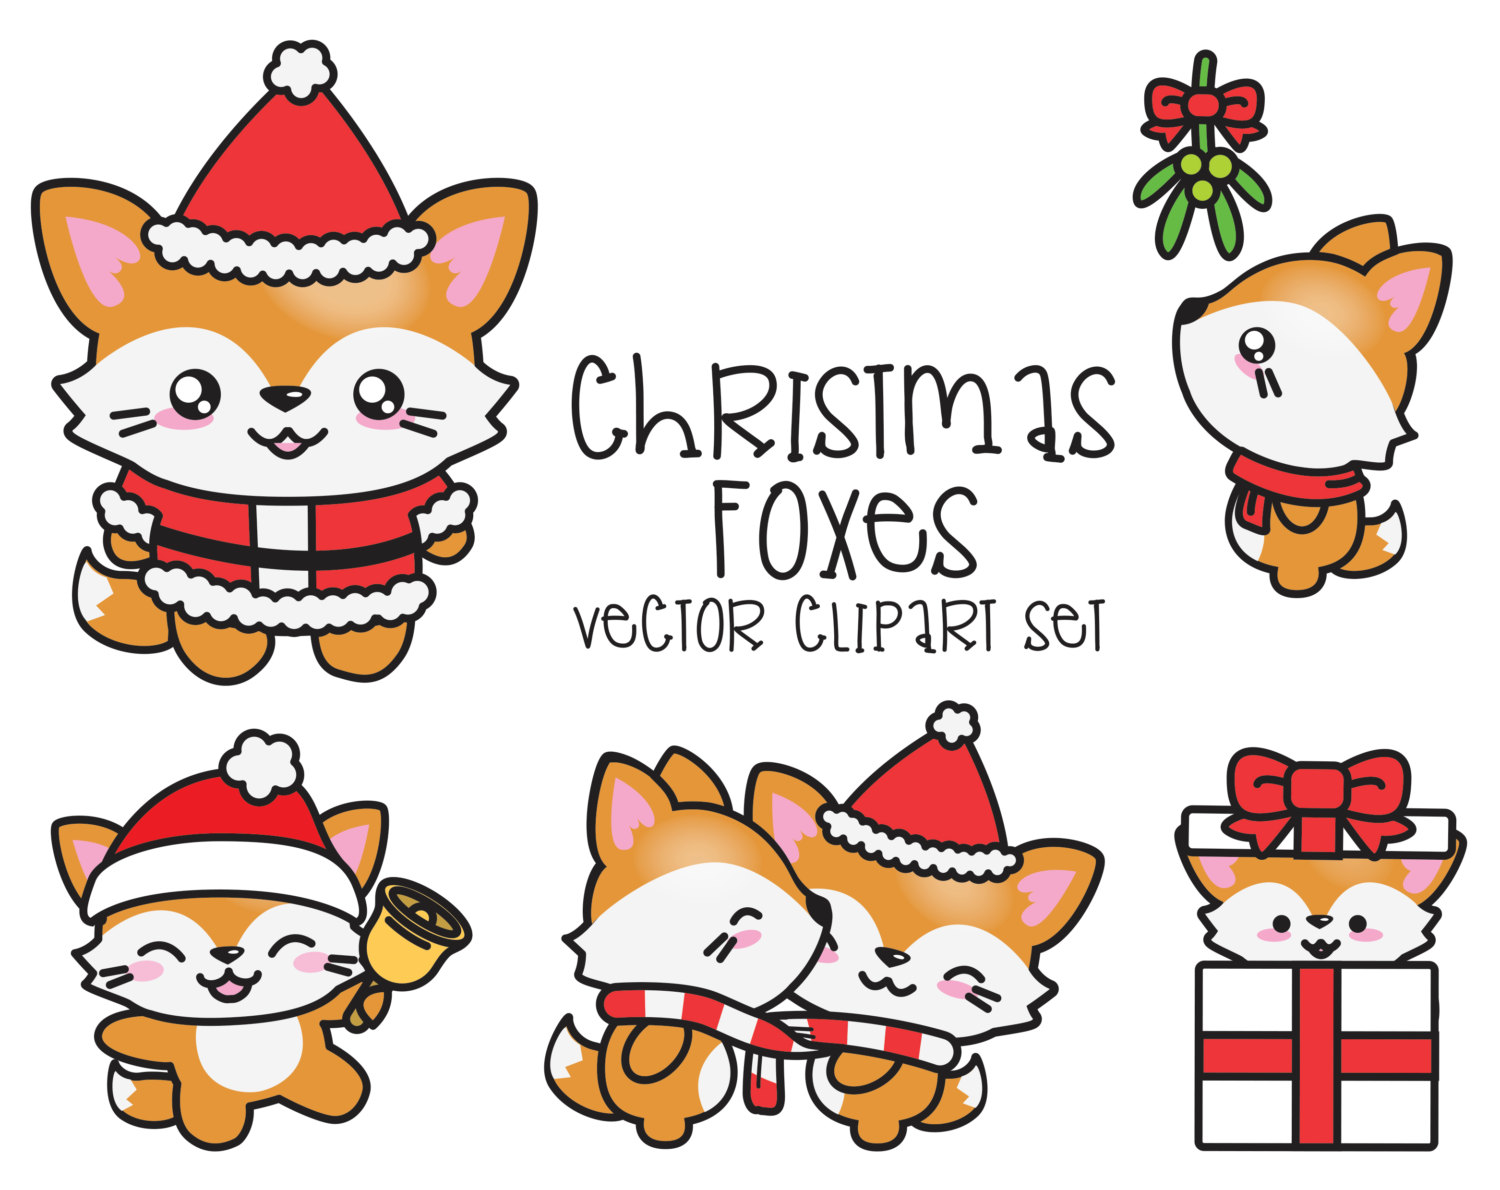 Character clipart kawaii. Premium vector christmas foxes